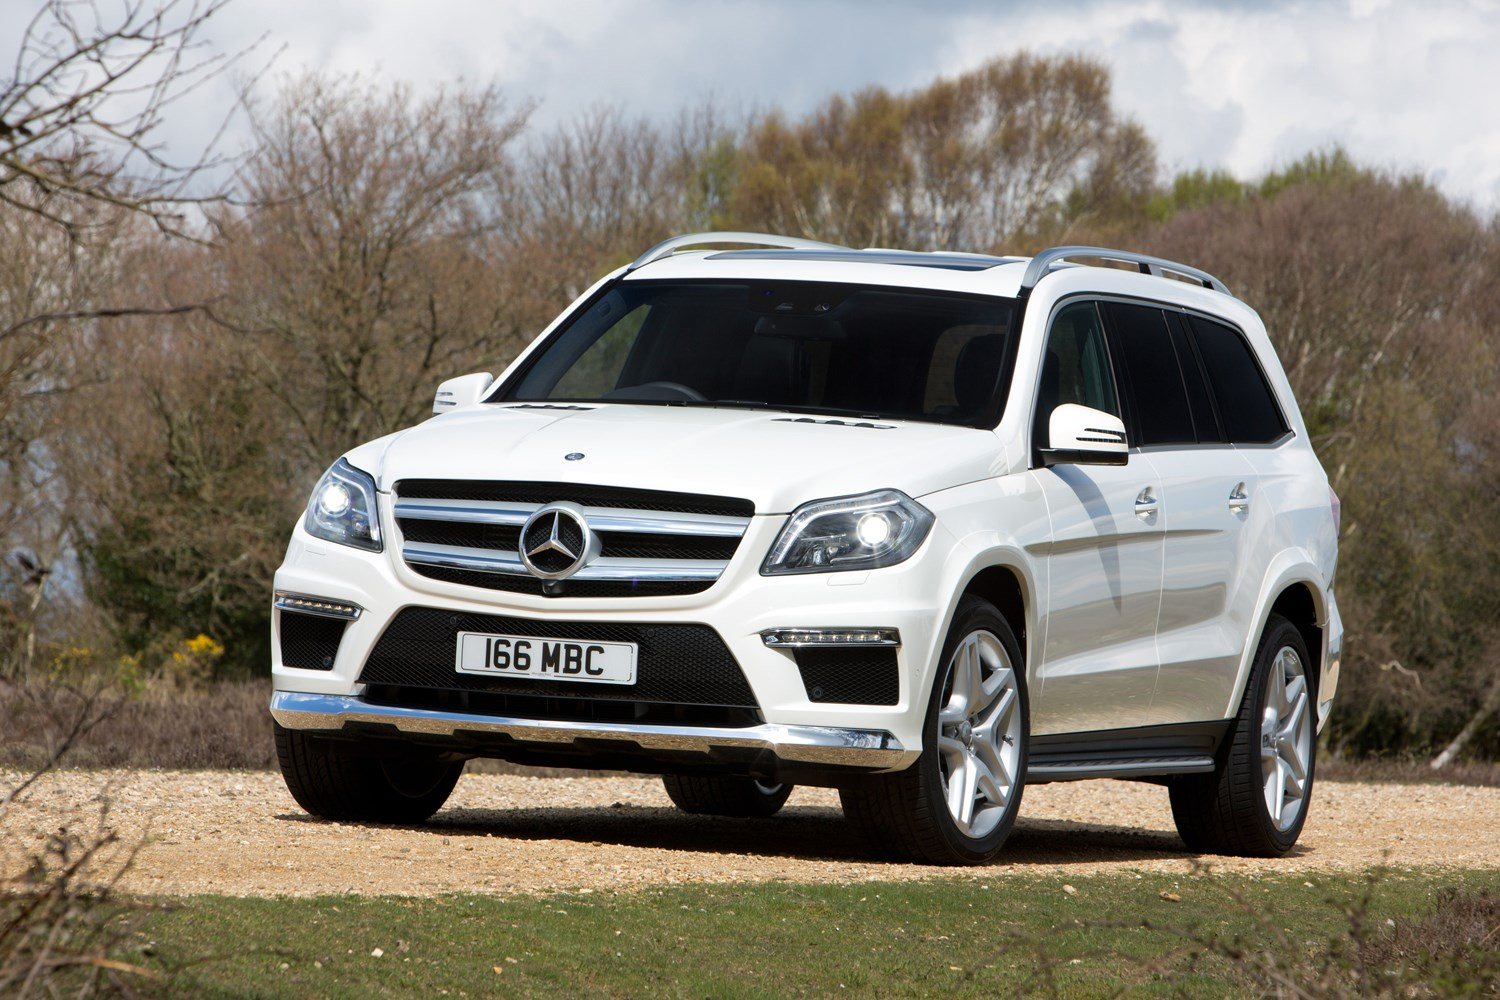 specifications from price cars gl sale class benz the for mercedes on now news